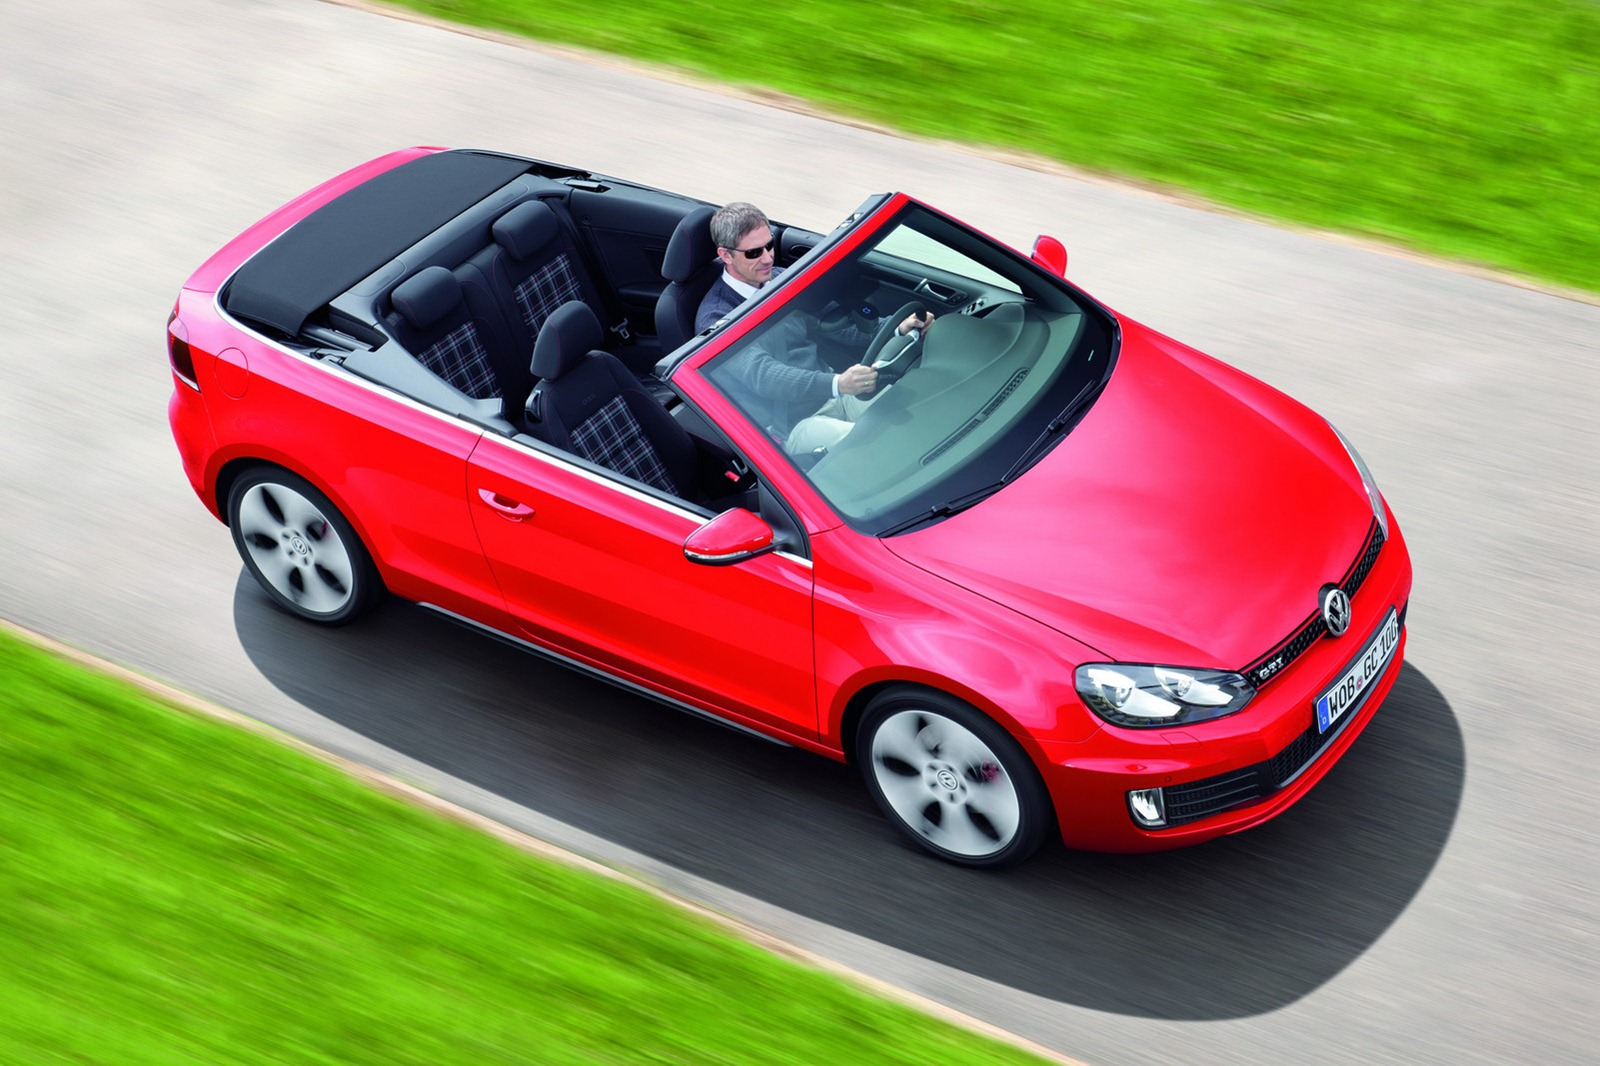 Slike Golf 2 GTI http://avtosvetnovice.blogspot.com/2012/05/vw-golf-gti-cabrio-slike-video.html